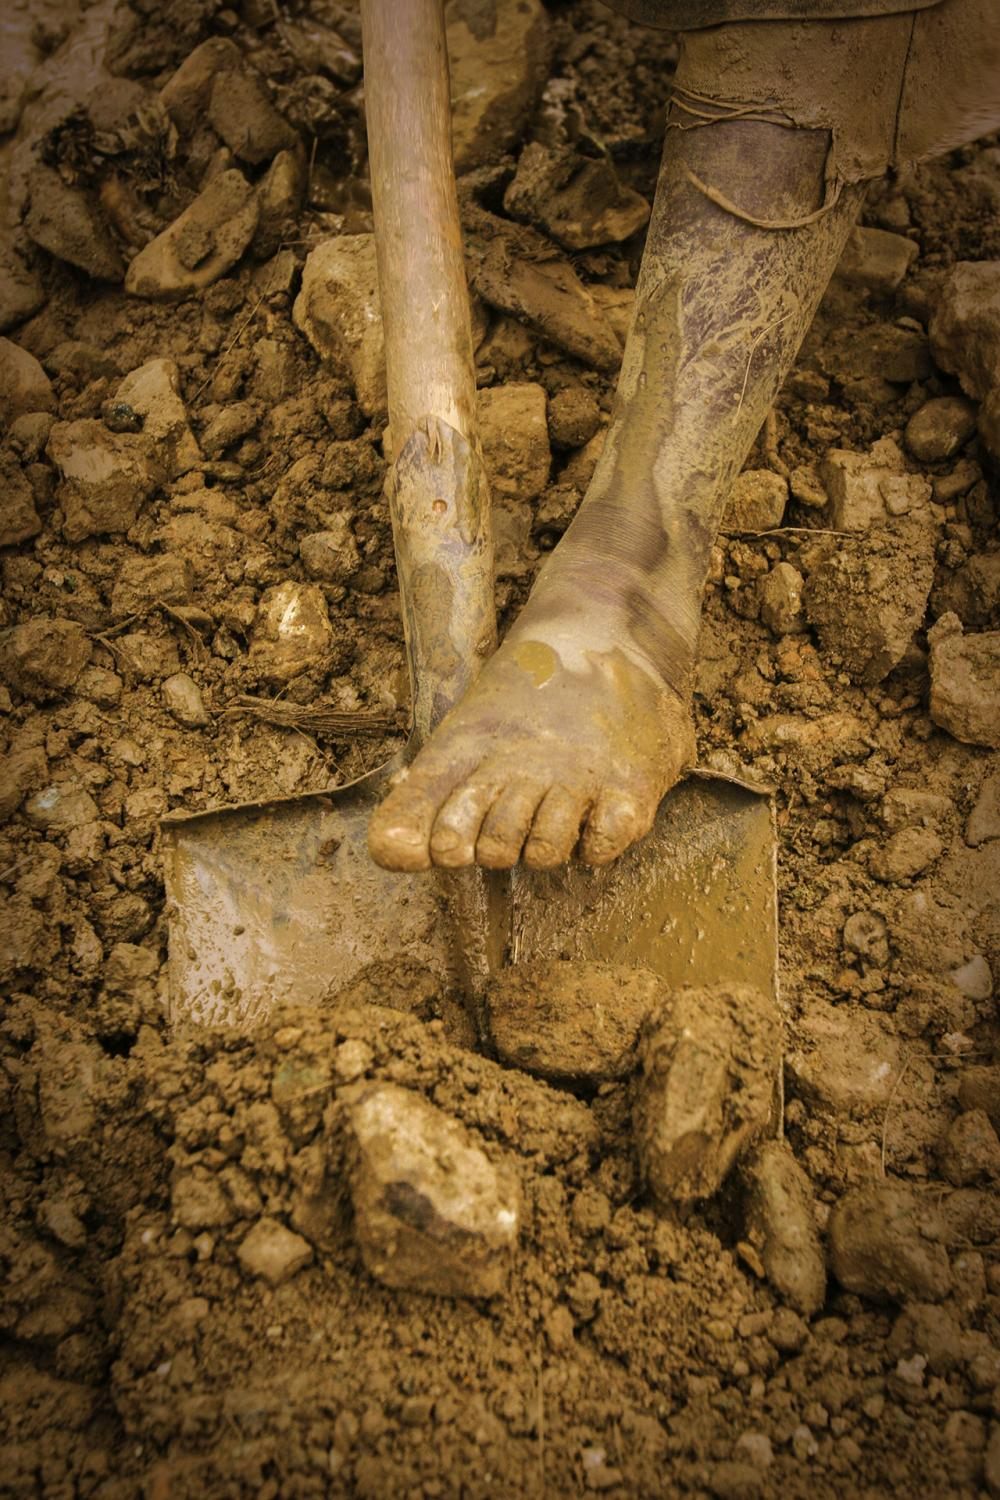 On hands and knees, mud and rocks is processed. Hardly any machinery is used to extract the gold in in most DR Congo mines.